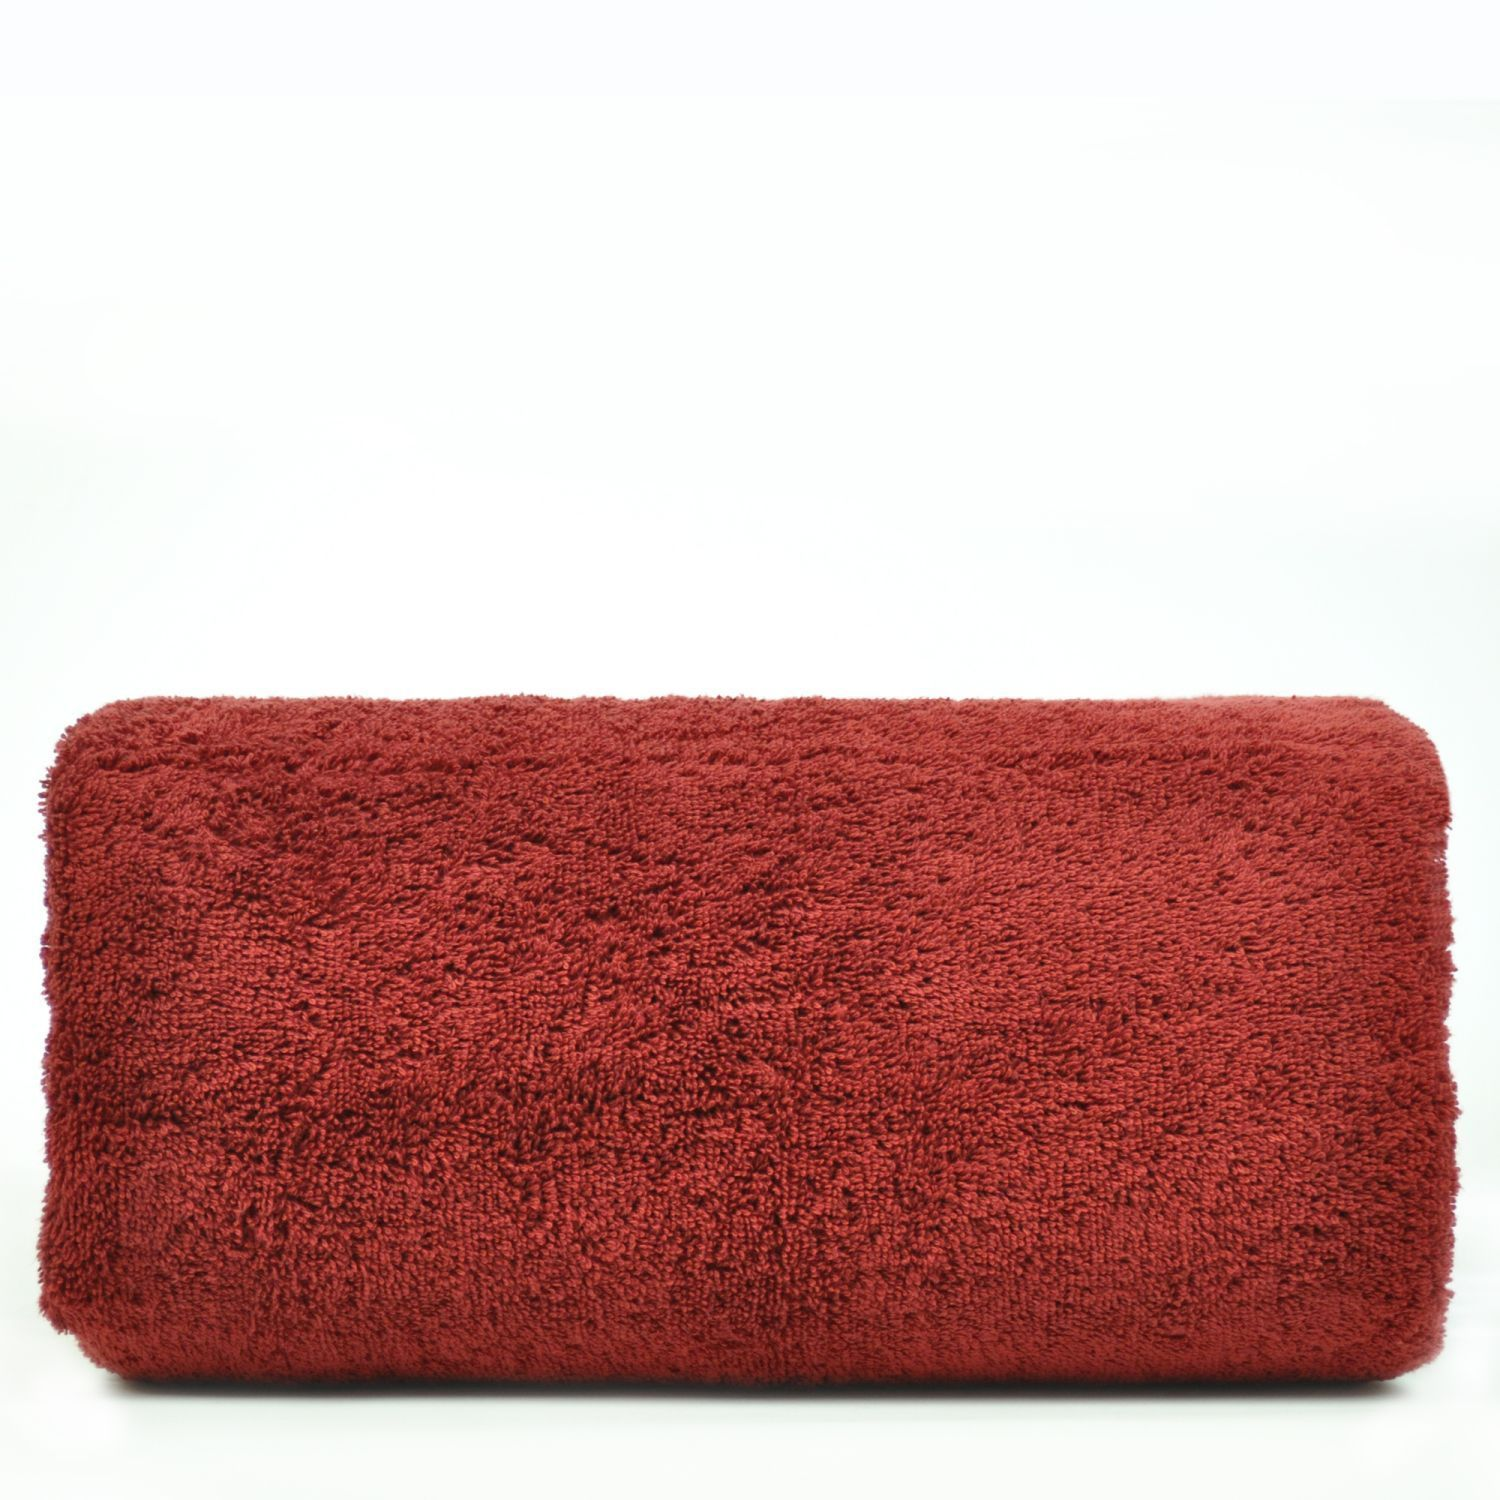 Oversized Bath Sheets Luxury Hotel & Spa Towel 100% Genuine Turkish Cotton Oversized Bath